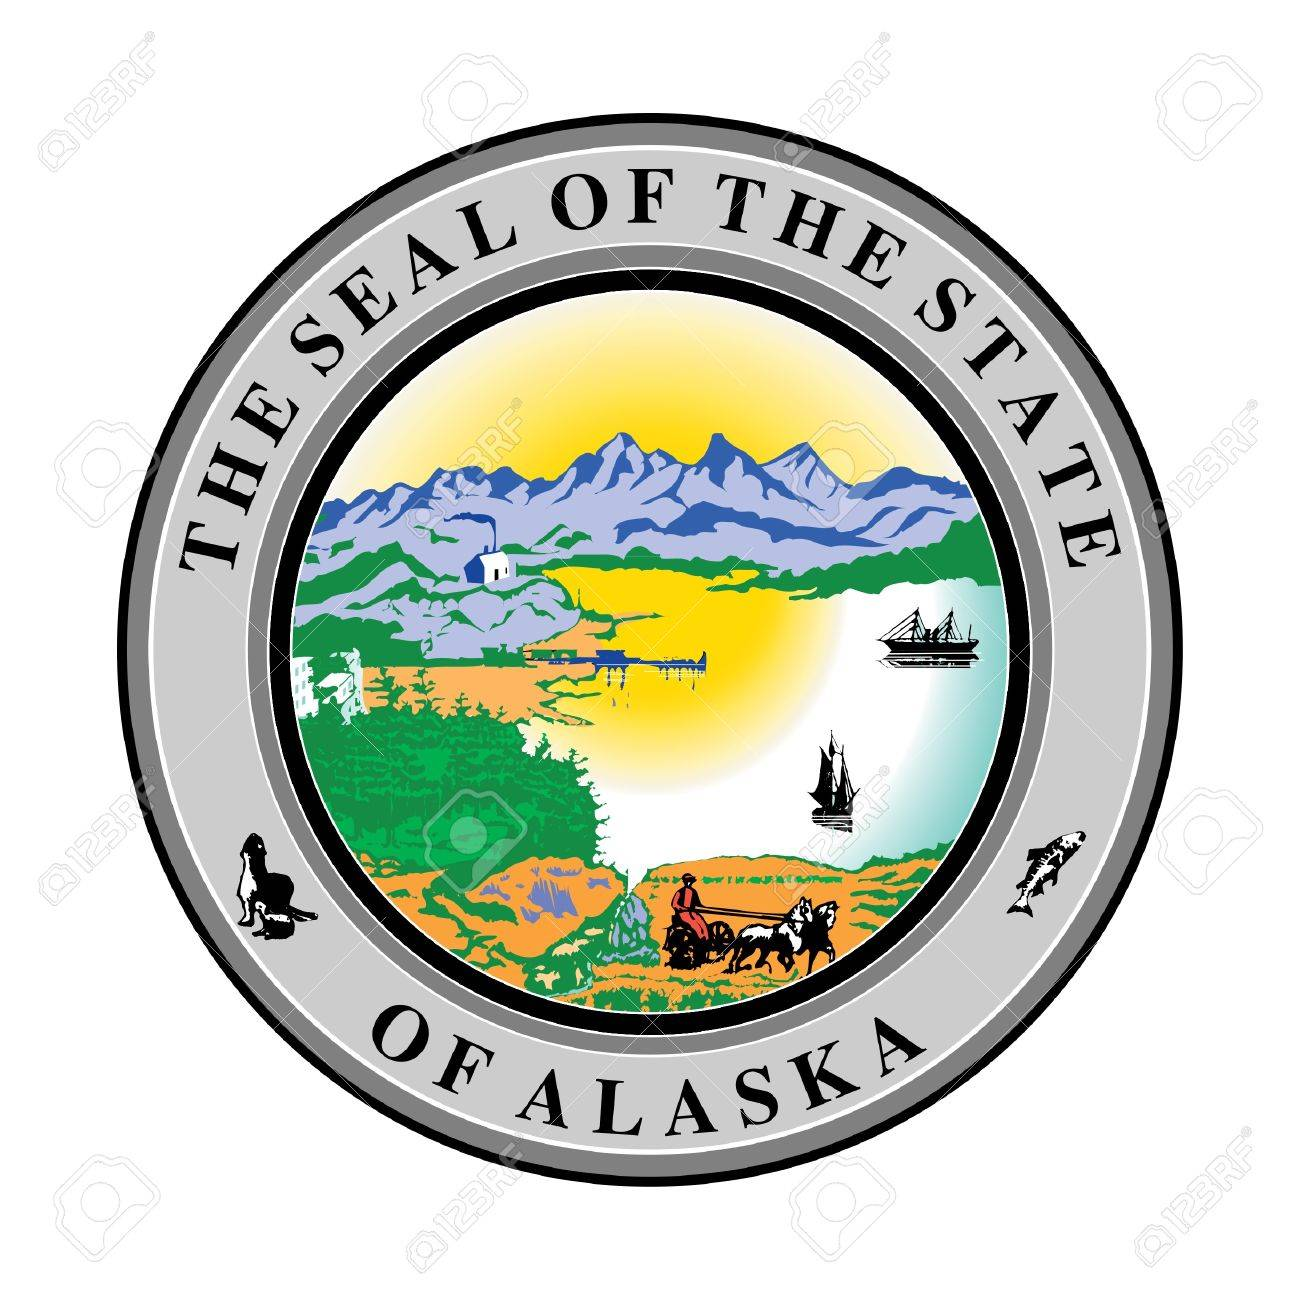 Seal of American state of Alaska; isolated on whiite background. Stock Photo - 9720435